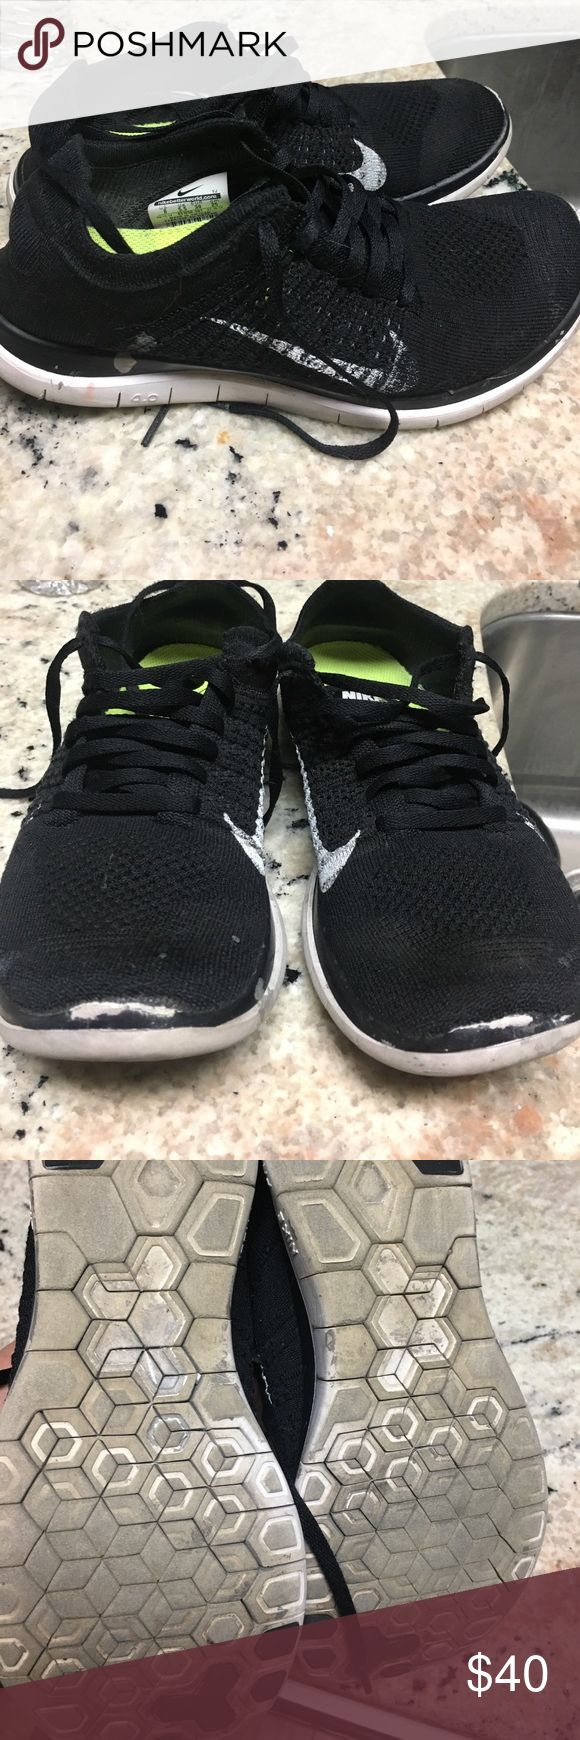 Nike flyknit black women size 8 See pics. Have been worn but still lots of life left. Black. Size 8. See scuff on toes. See paint mark on bottom Shoes Athletic Shoes